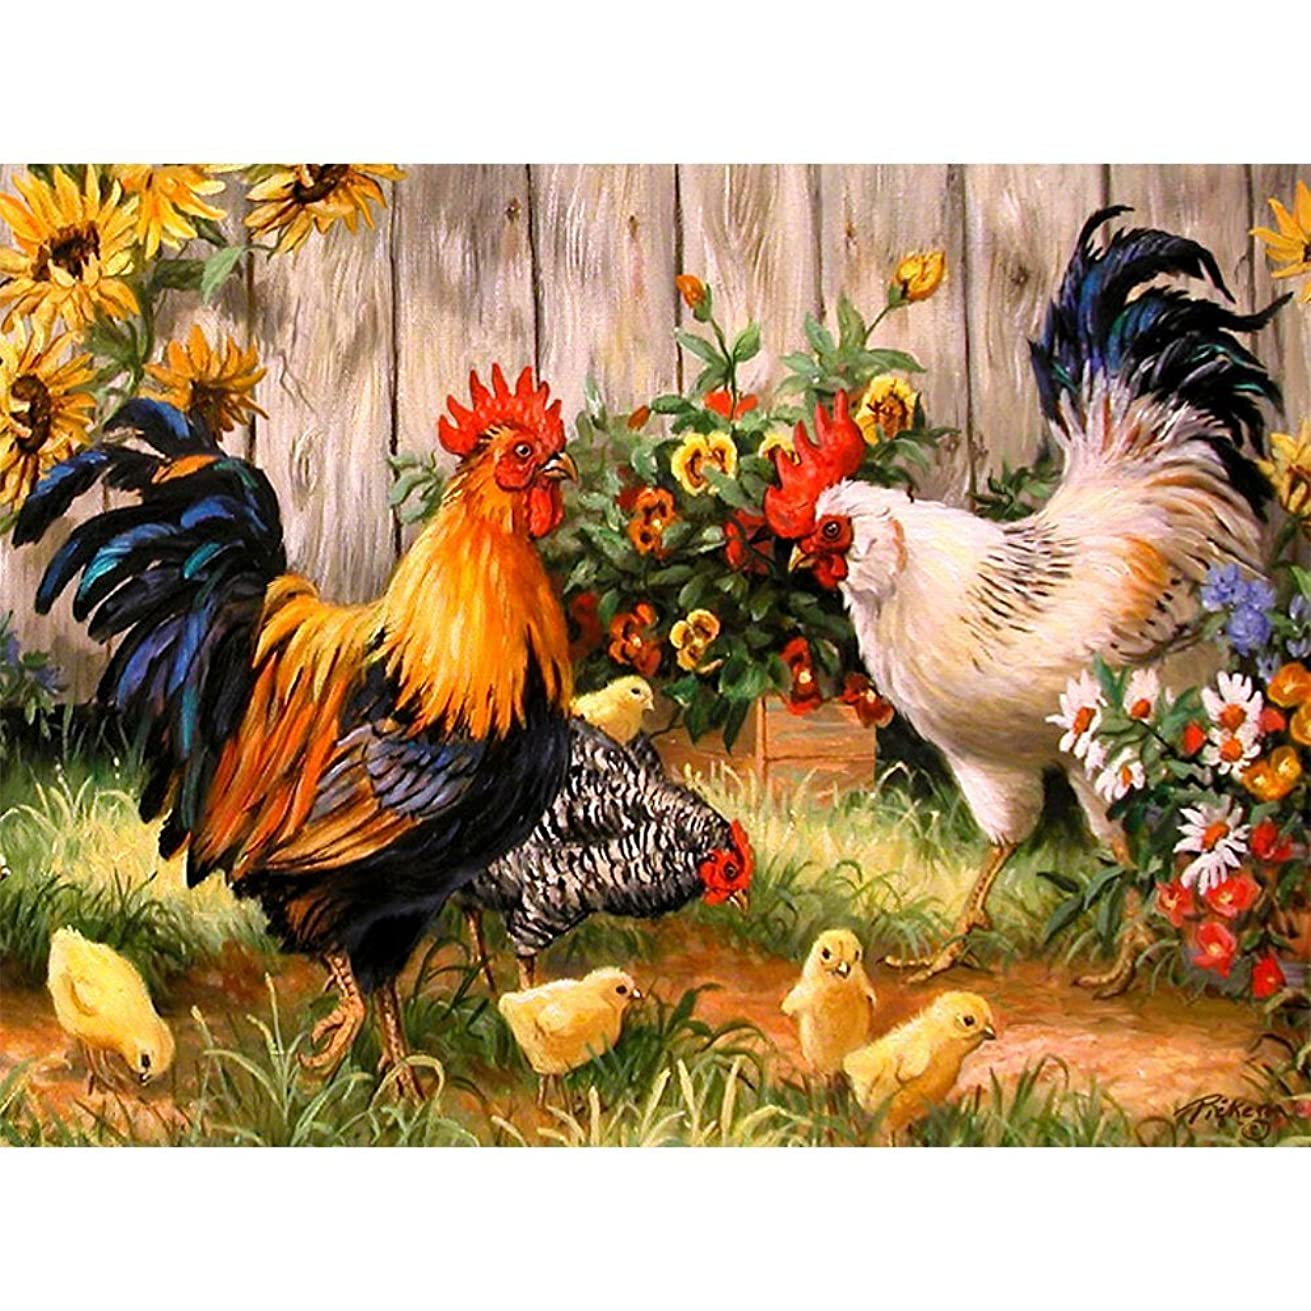 URlighting DIY 5D Diamond Painting Kits for Adults By Number Kits, Full Drill Embroidery Rhinestone Cross Stitch Arts Craft Canvas for Home Wall Decoration 18.1 x 14.2 inch (Chicken)